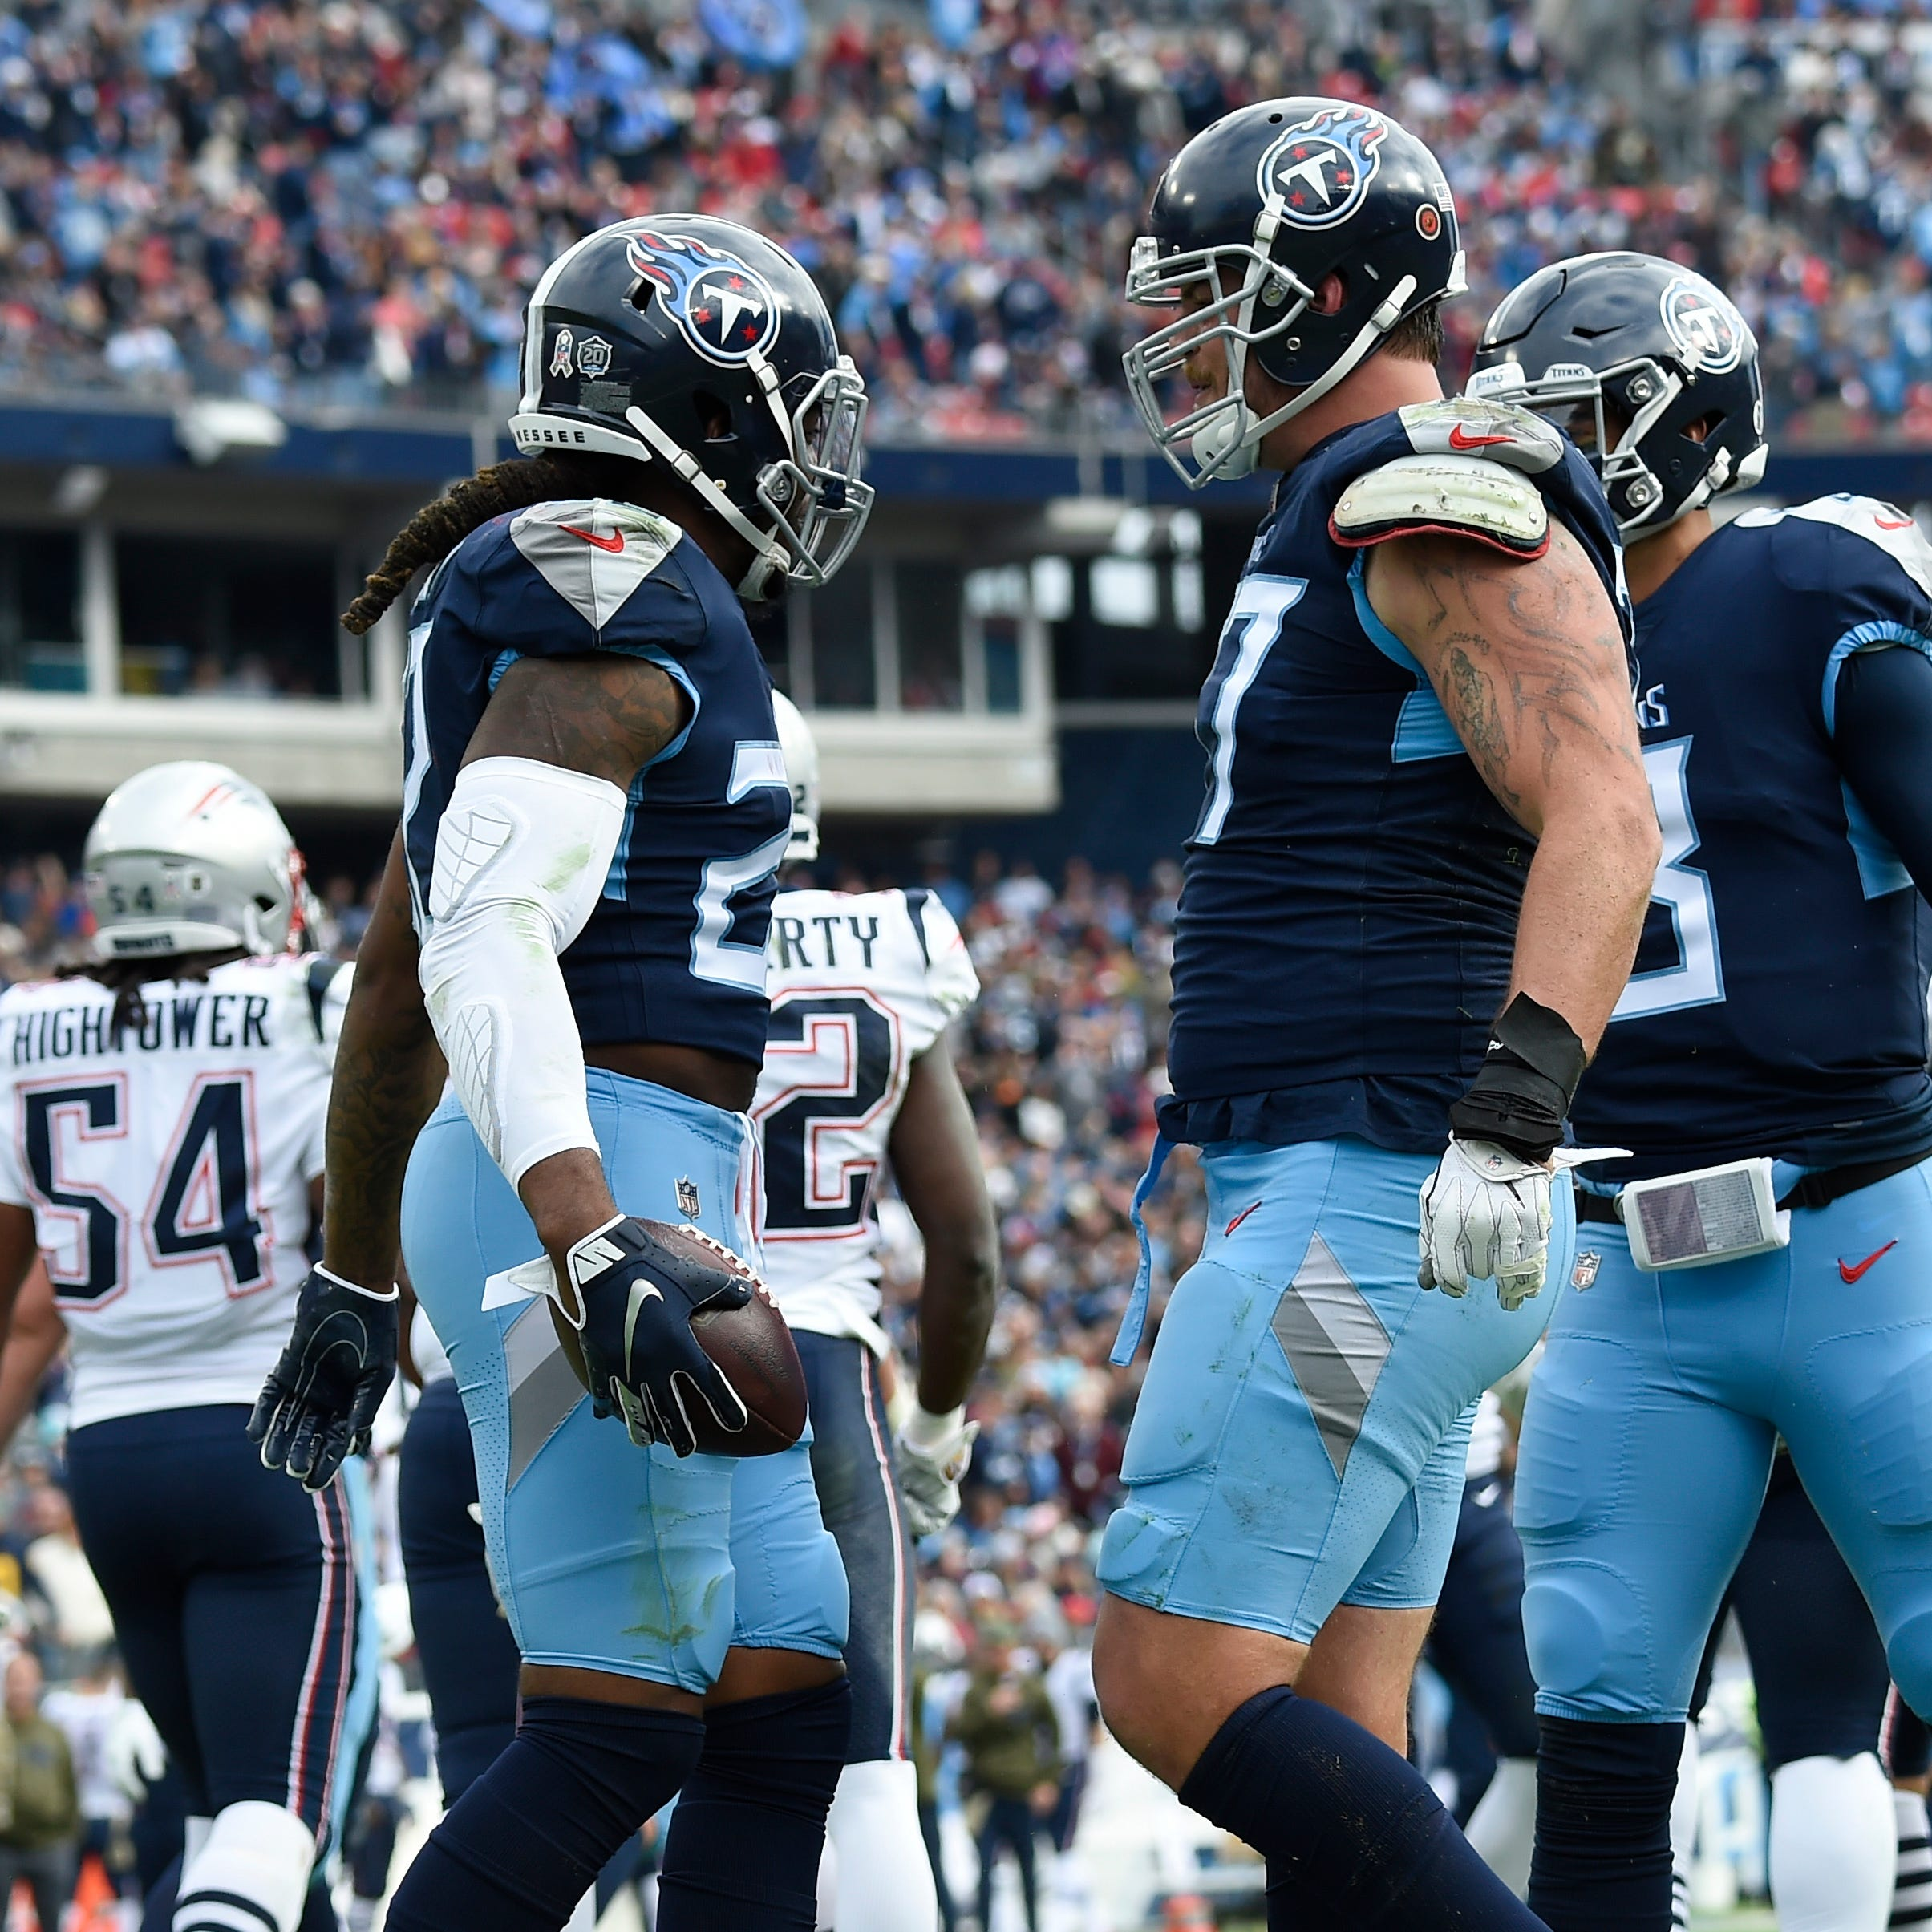 Titans 34, Patriots 10: Five things to know from a convincing win